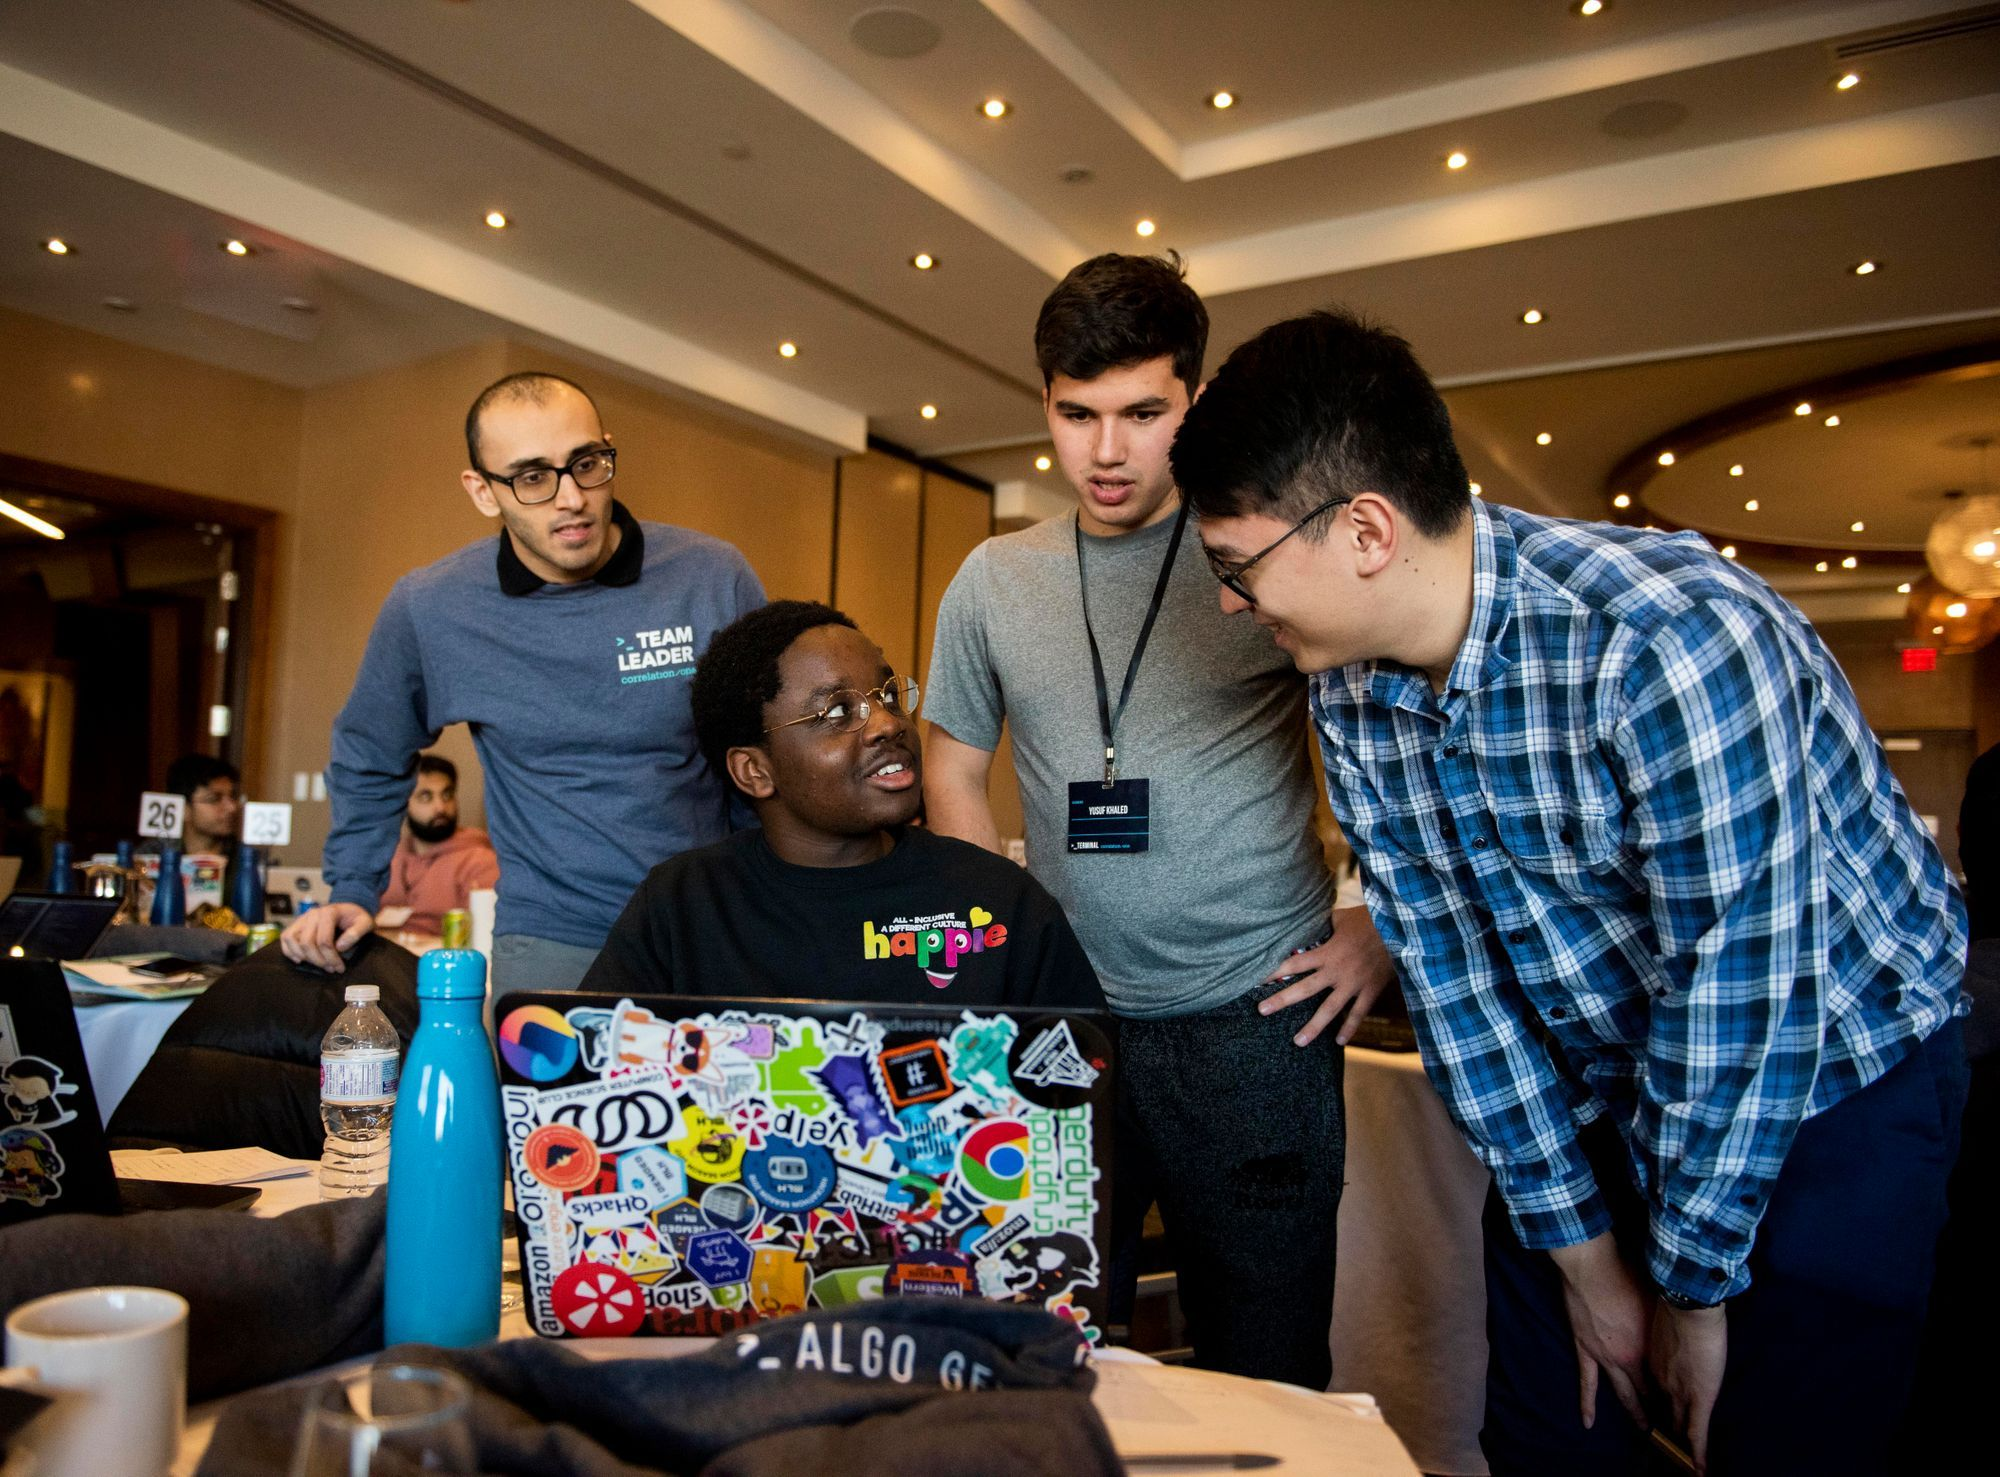 Waterloo Students Take Home $25k in Cash Prizes at 'TERMINAL: LIVE' AI Coding Competition